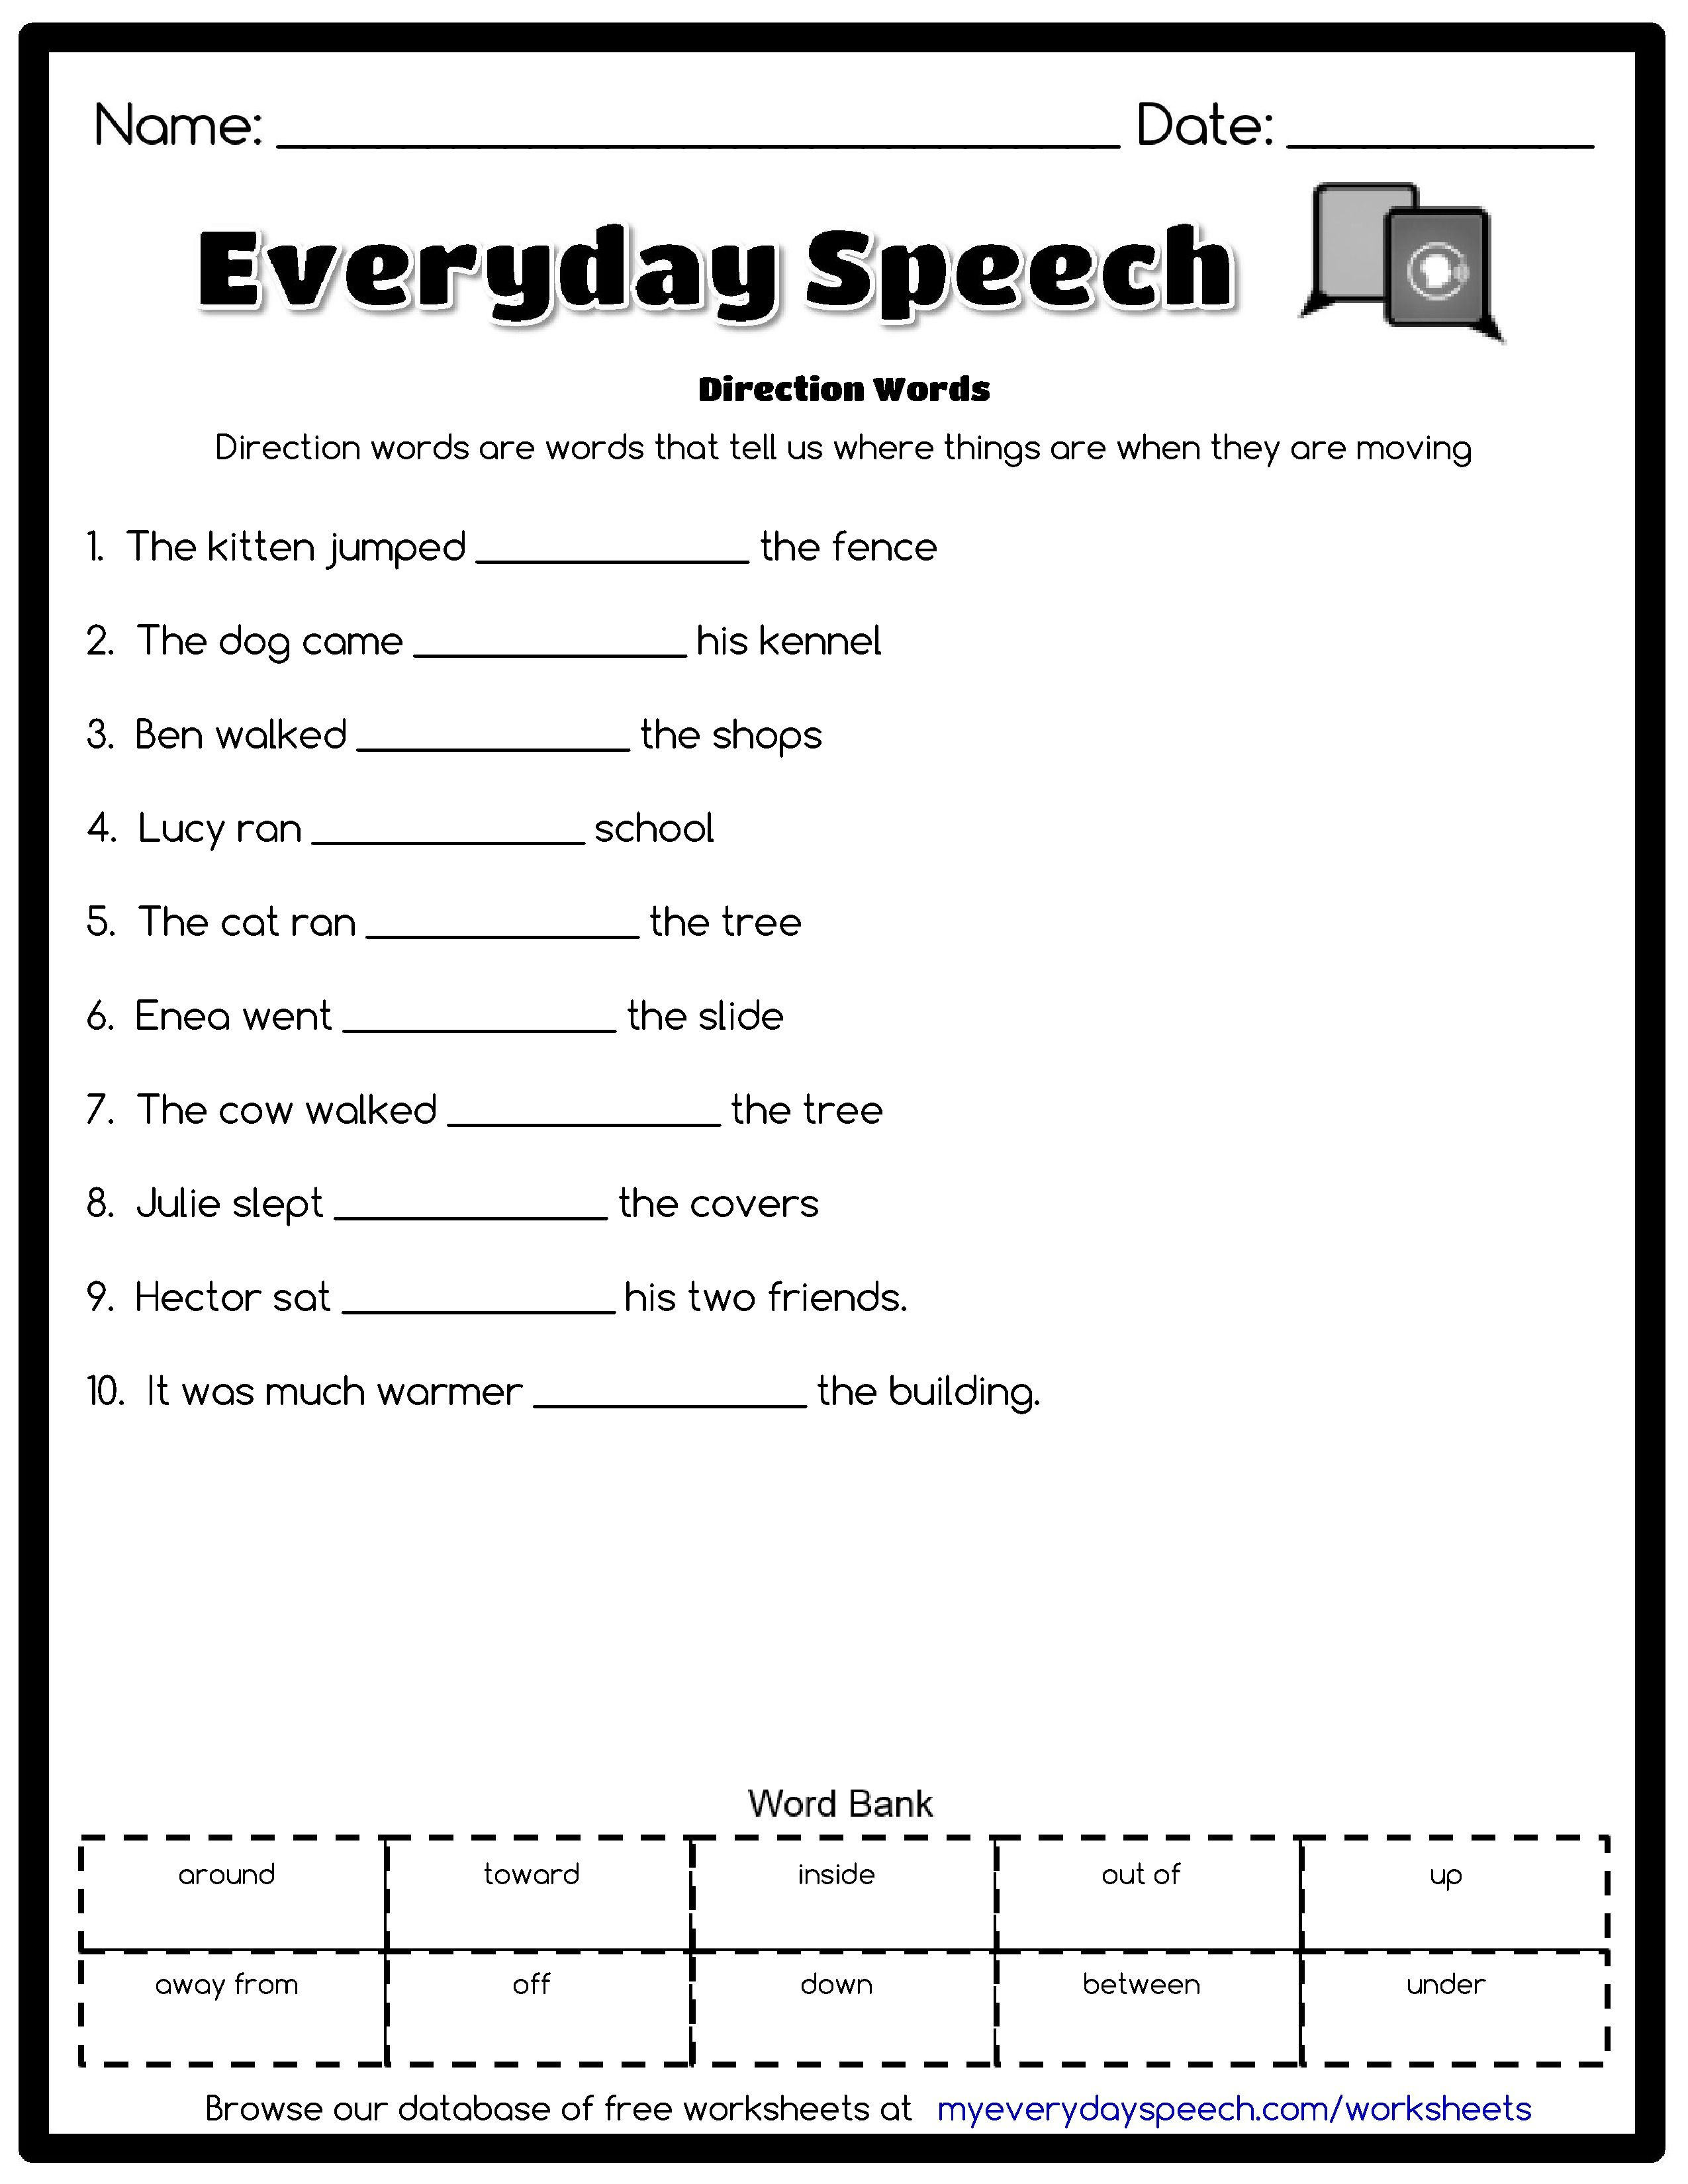 Check out the worksheet I just made using Everyday Speech's worksheet  creator! Direction Words - Direction words are wor…   Speech therapy  worksheets [ 3300 x 2550 Pixel ]